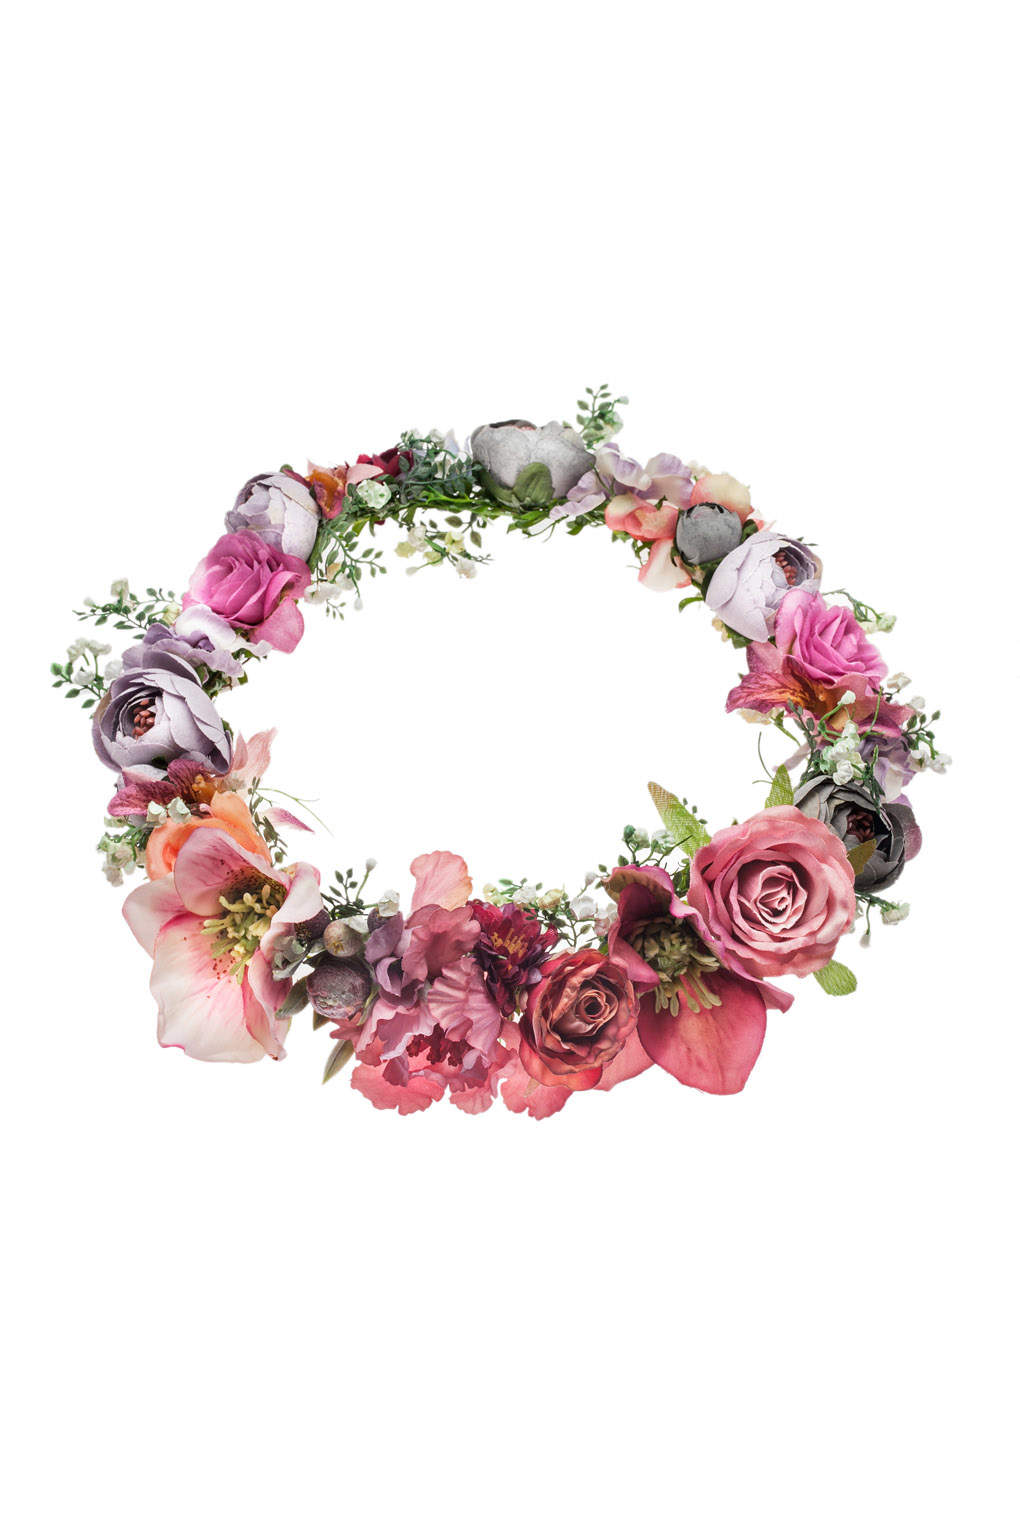 Jewels Clothes Style Flower Crown Crowns Flowers Pink Flowers